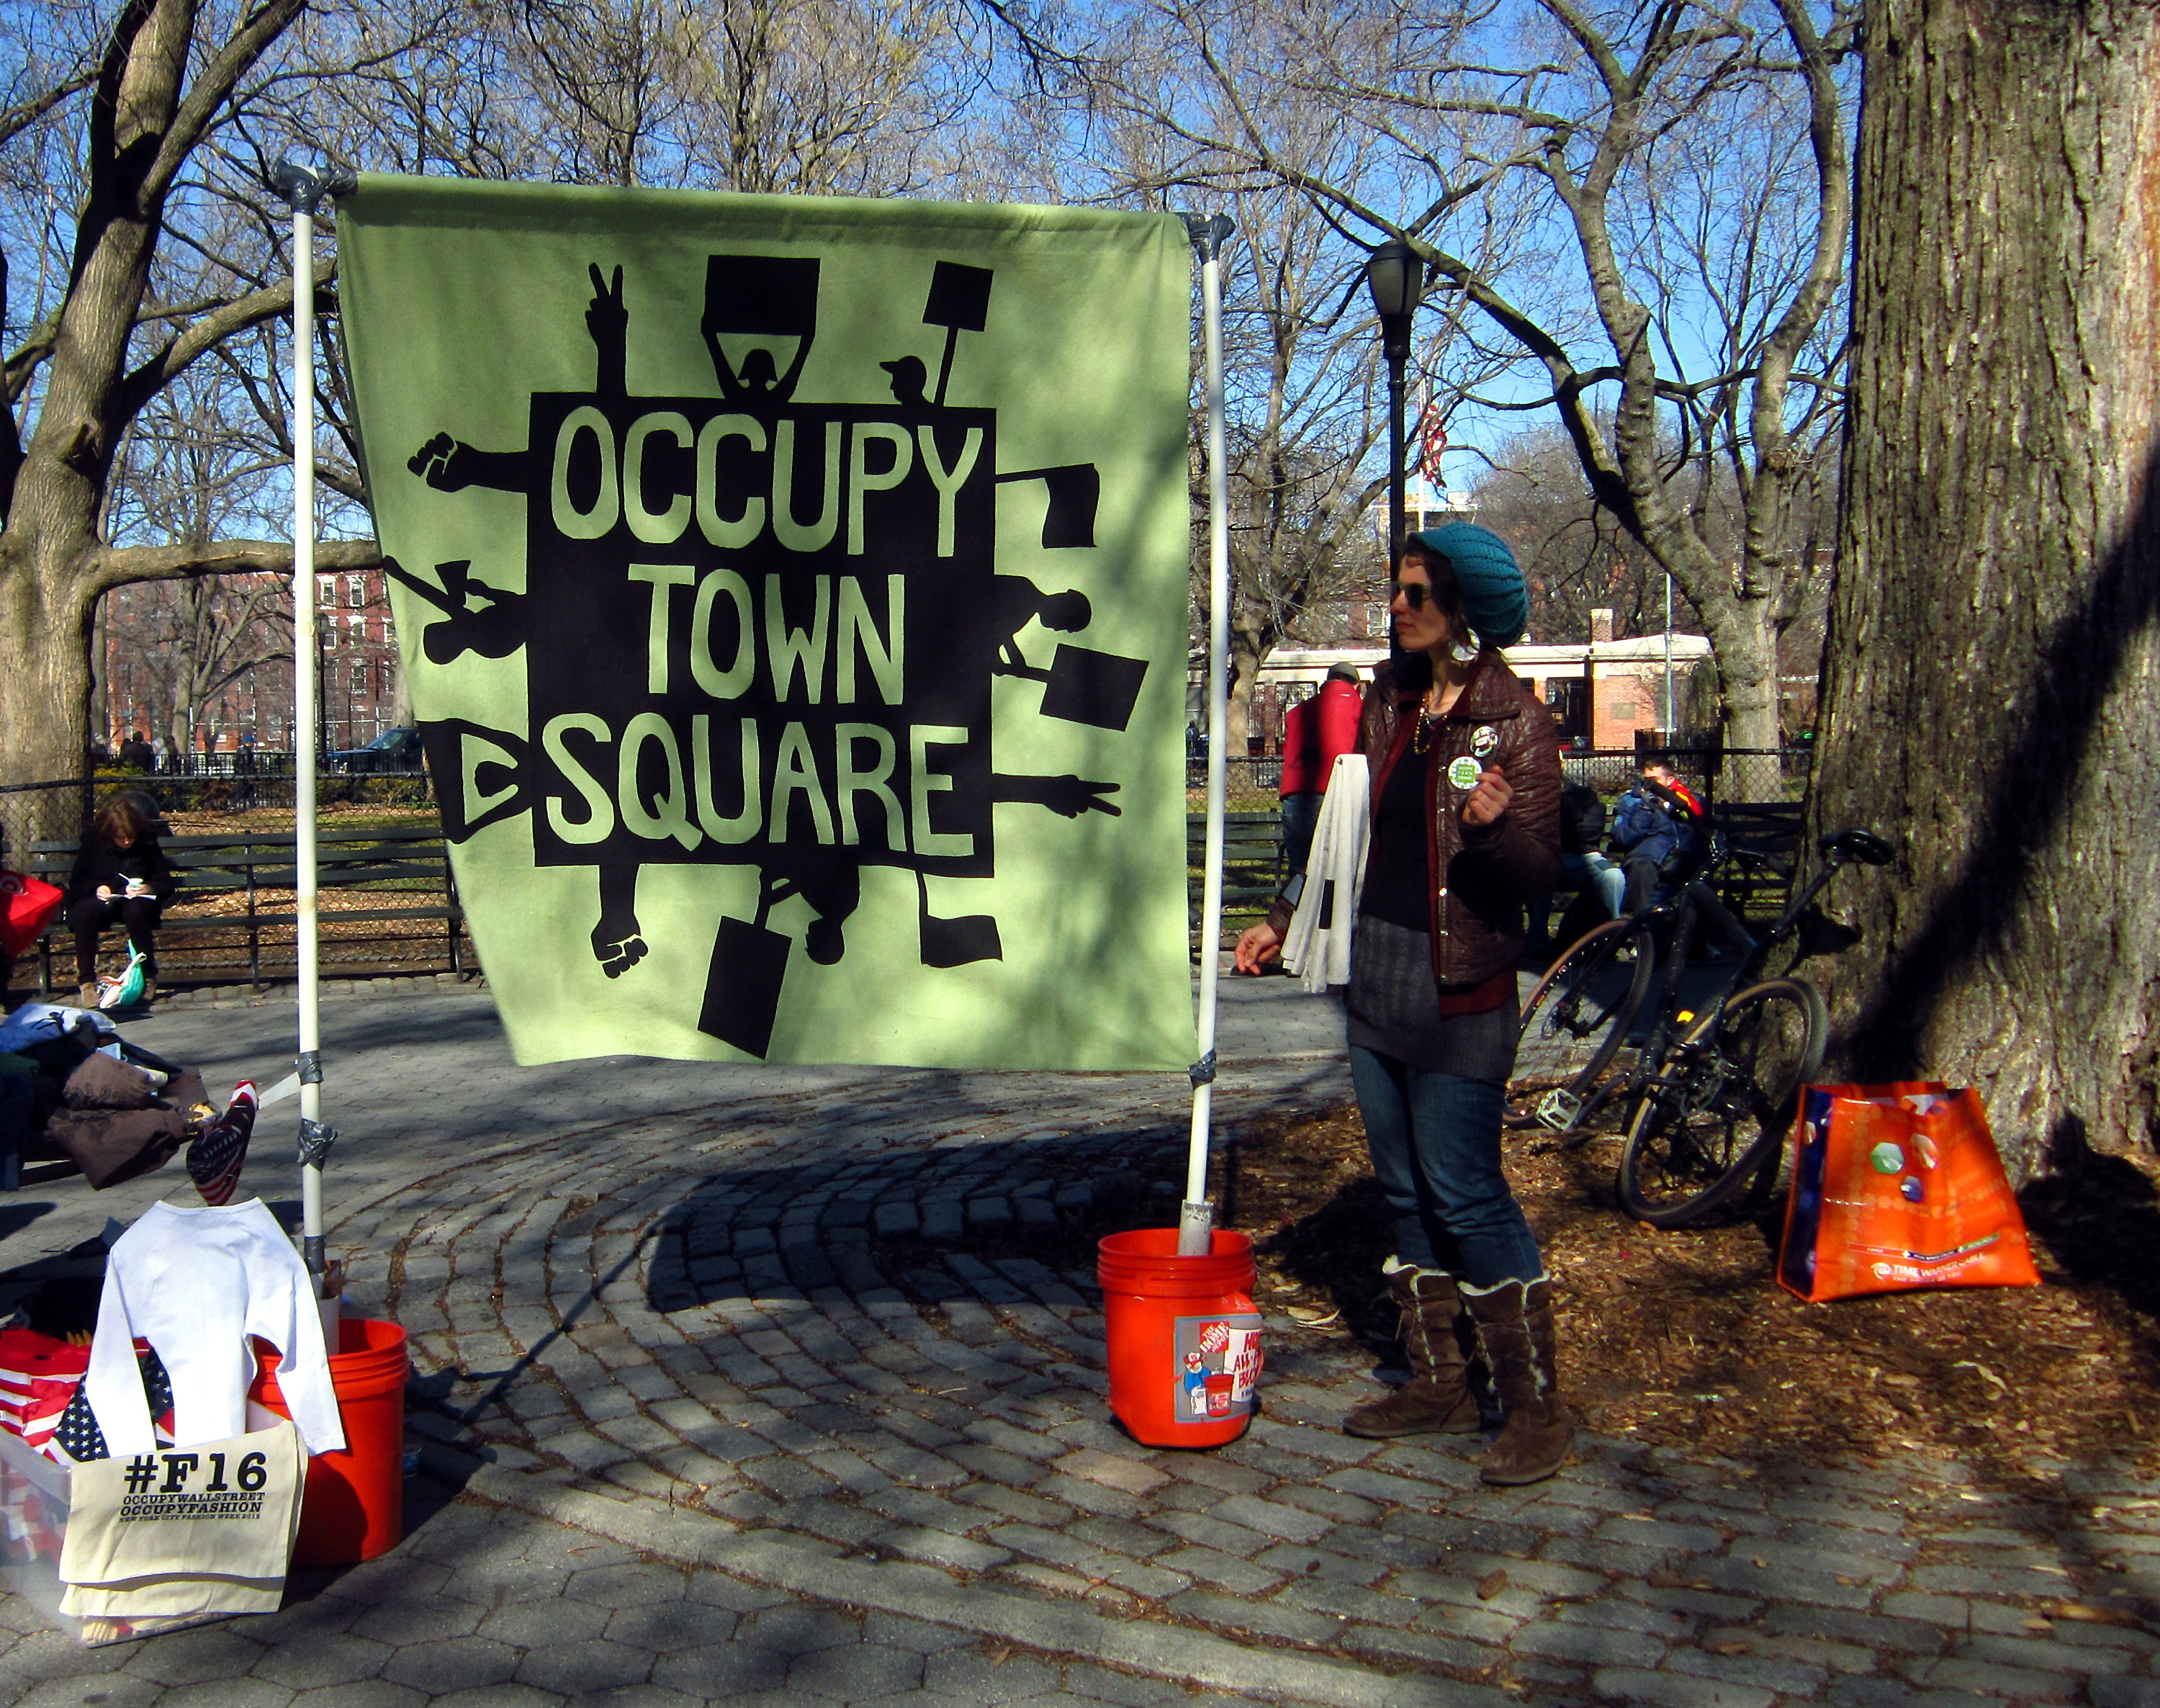 Occupy Town Square